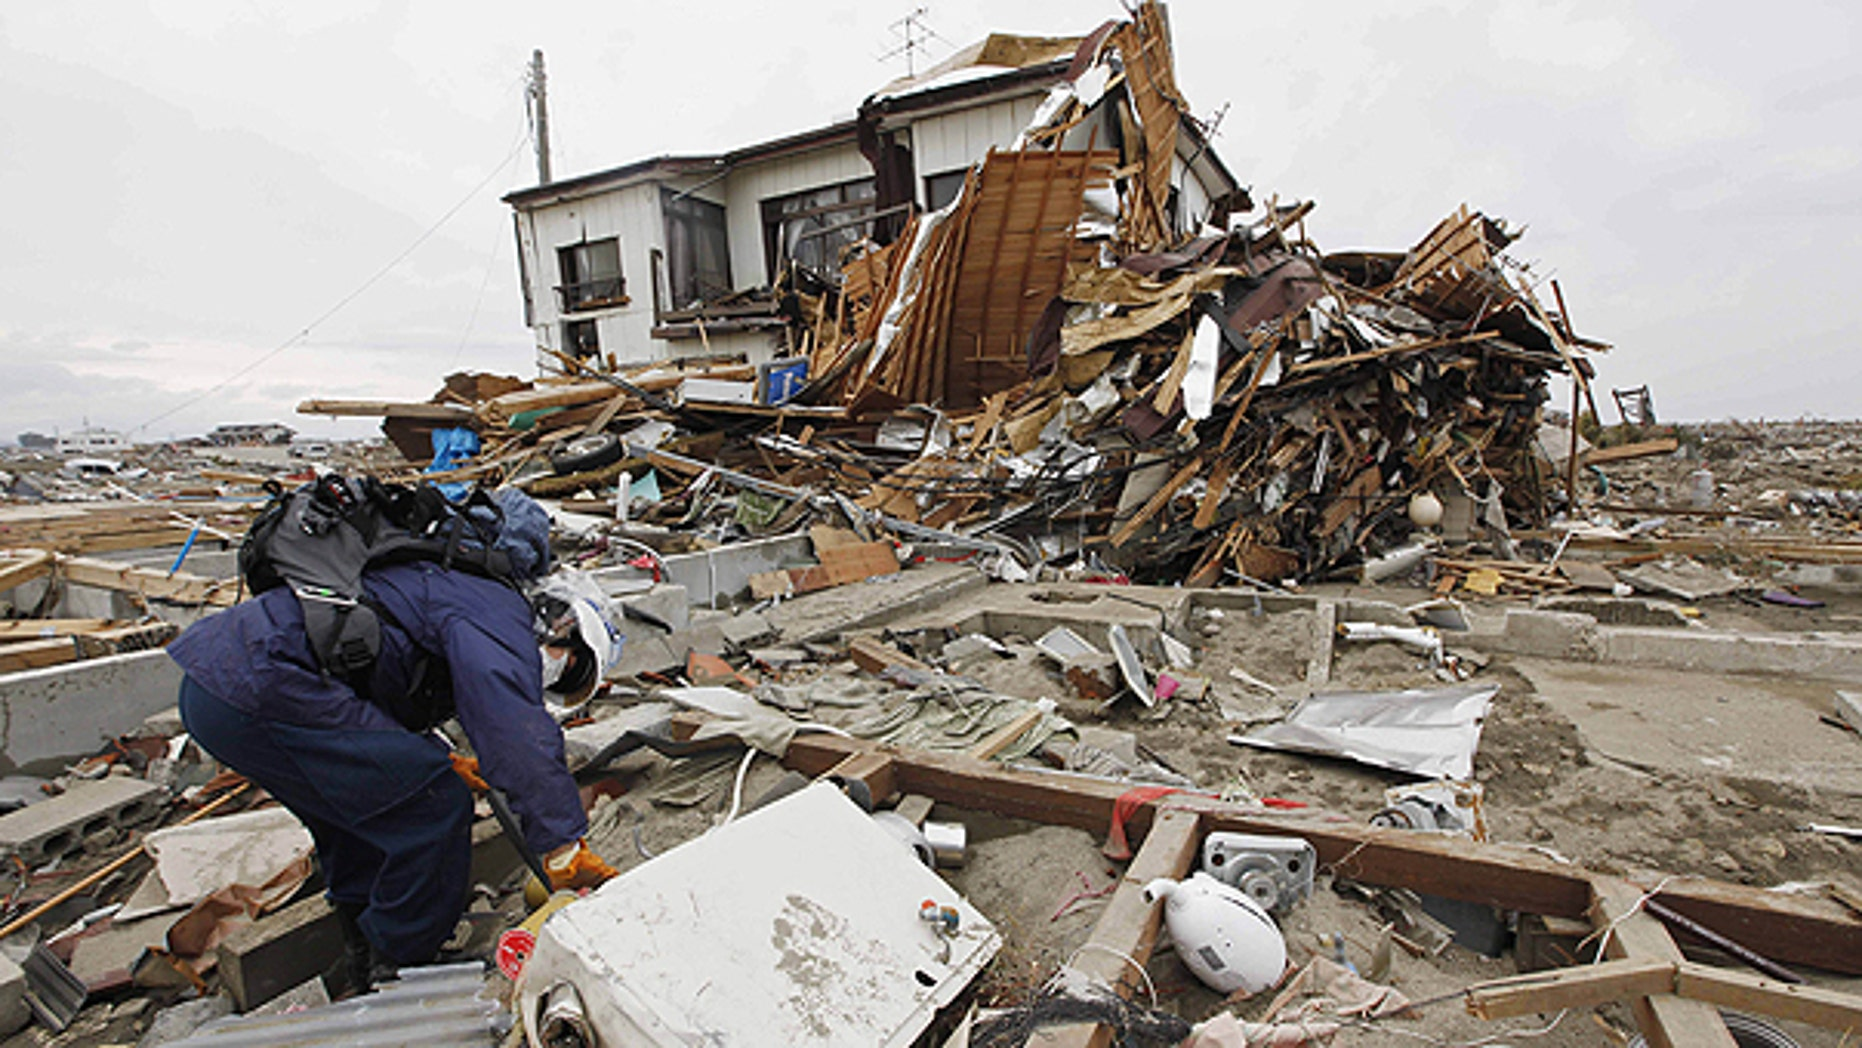 March 21: A rescue worker sifts through debris during a search in Natori, Miyagi Prefecture following the March 11 earthquake and tsunami that devastated the northeast coast of Japan.